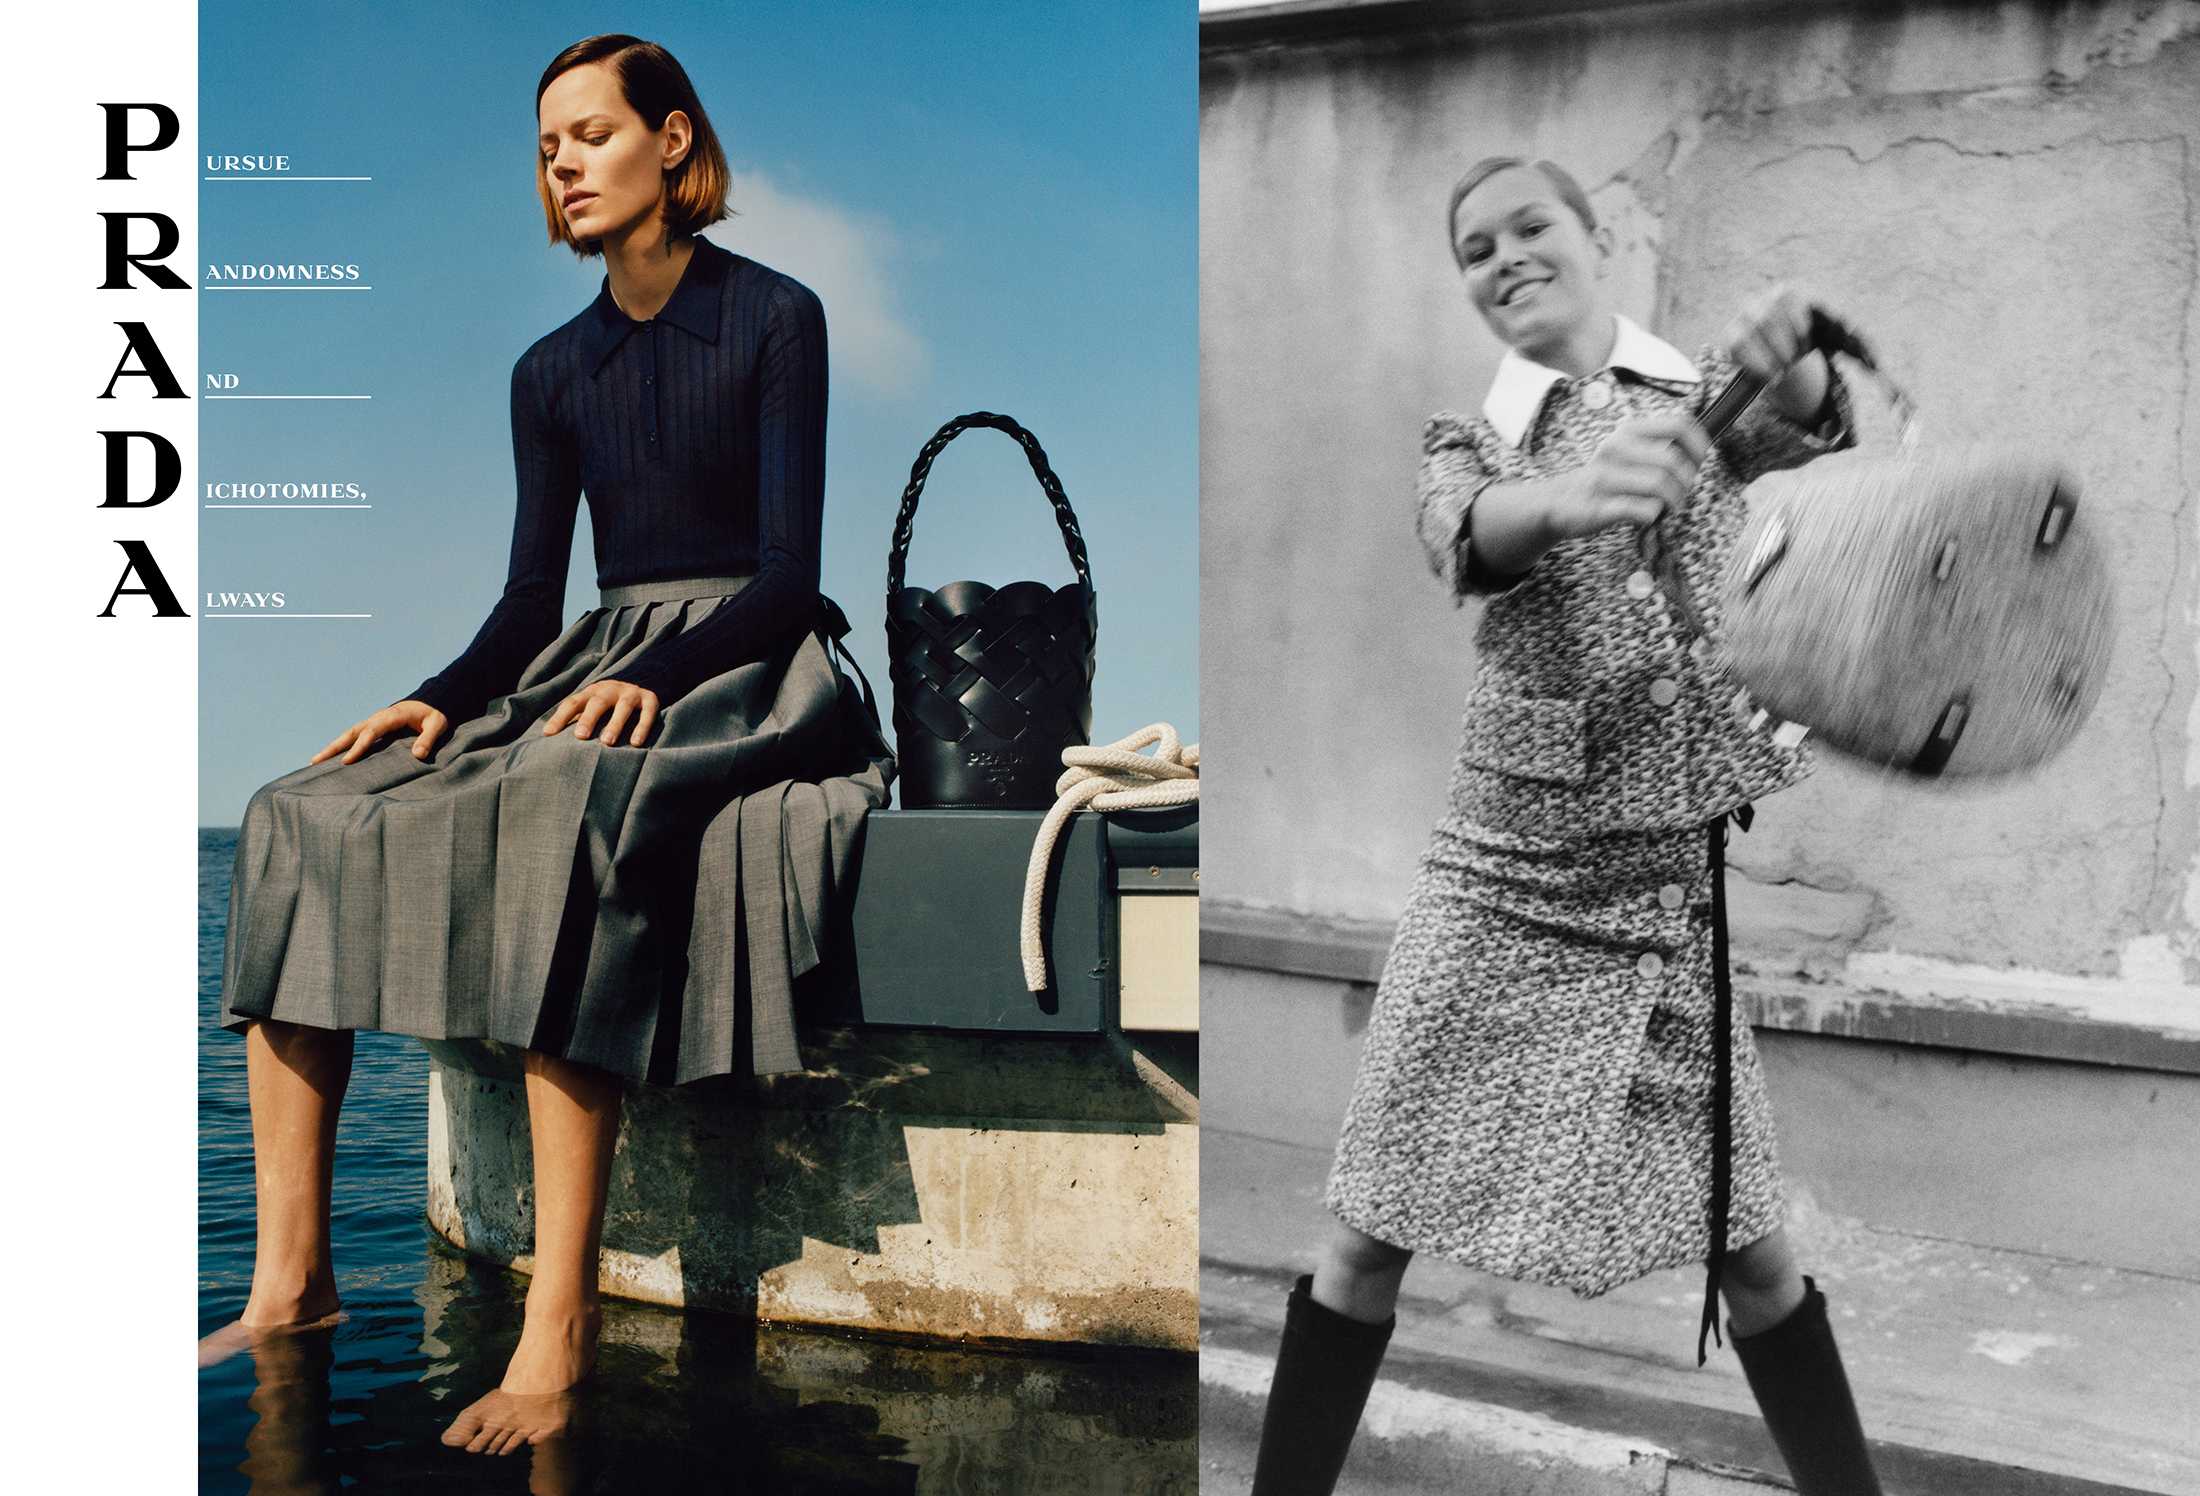 Prada Spring 2020 Fashion Ad Campaign Photos